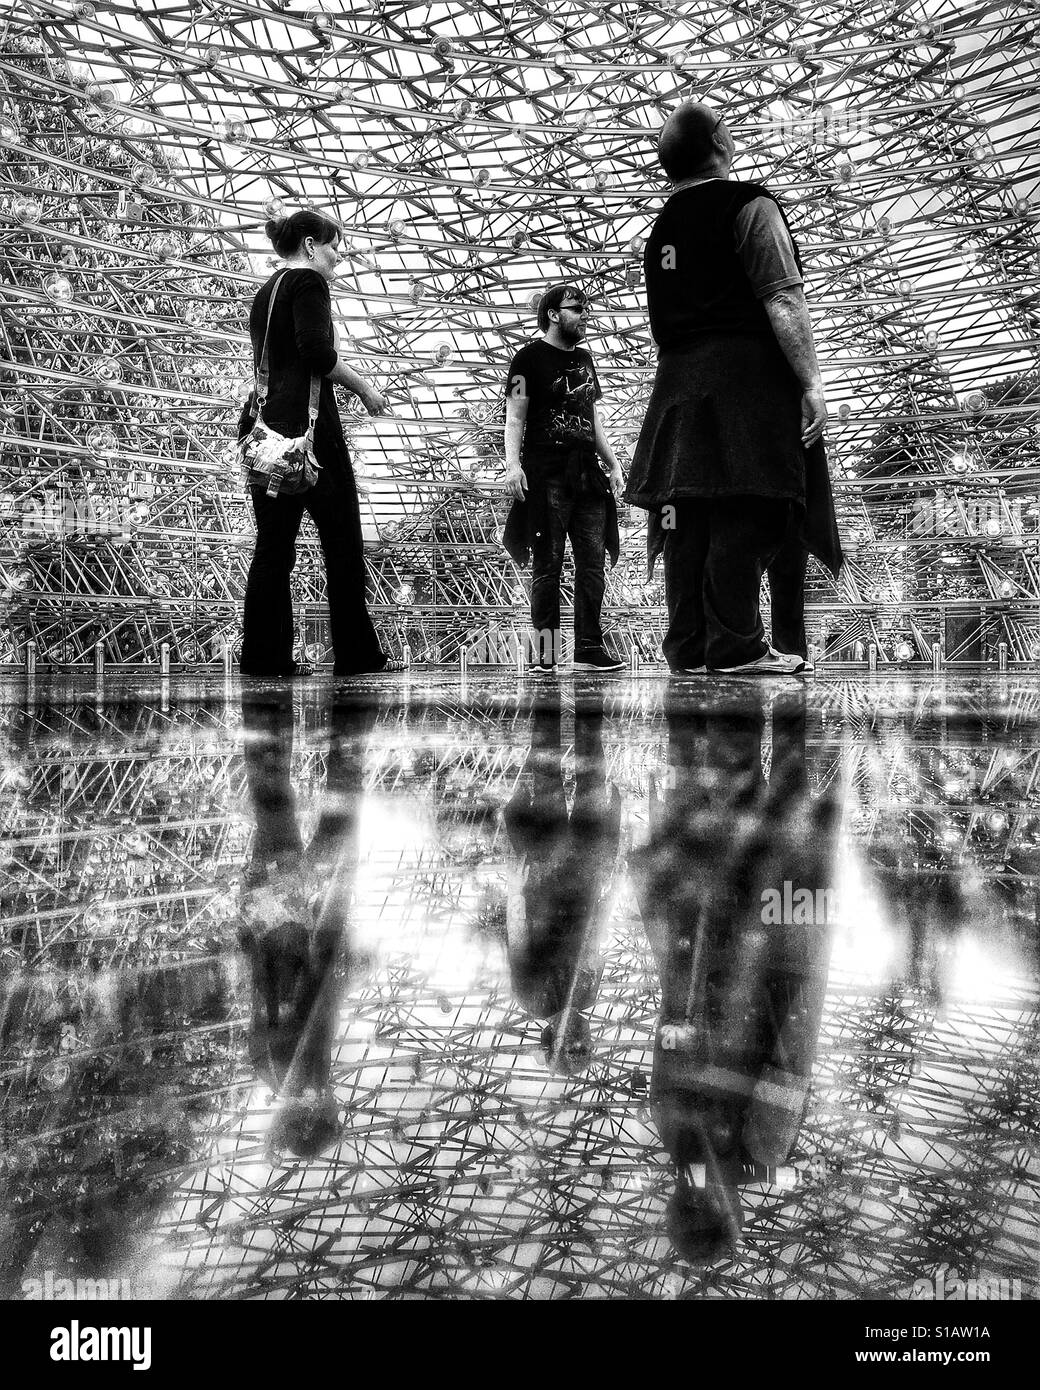 Three people looking up and reflected on the floor of The Hive, an art installation telling the story of honey bees - Stock Image